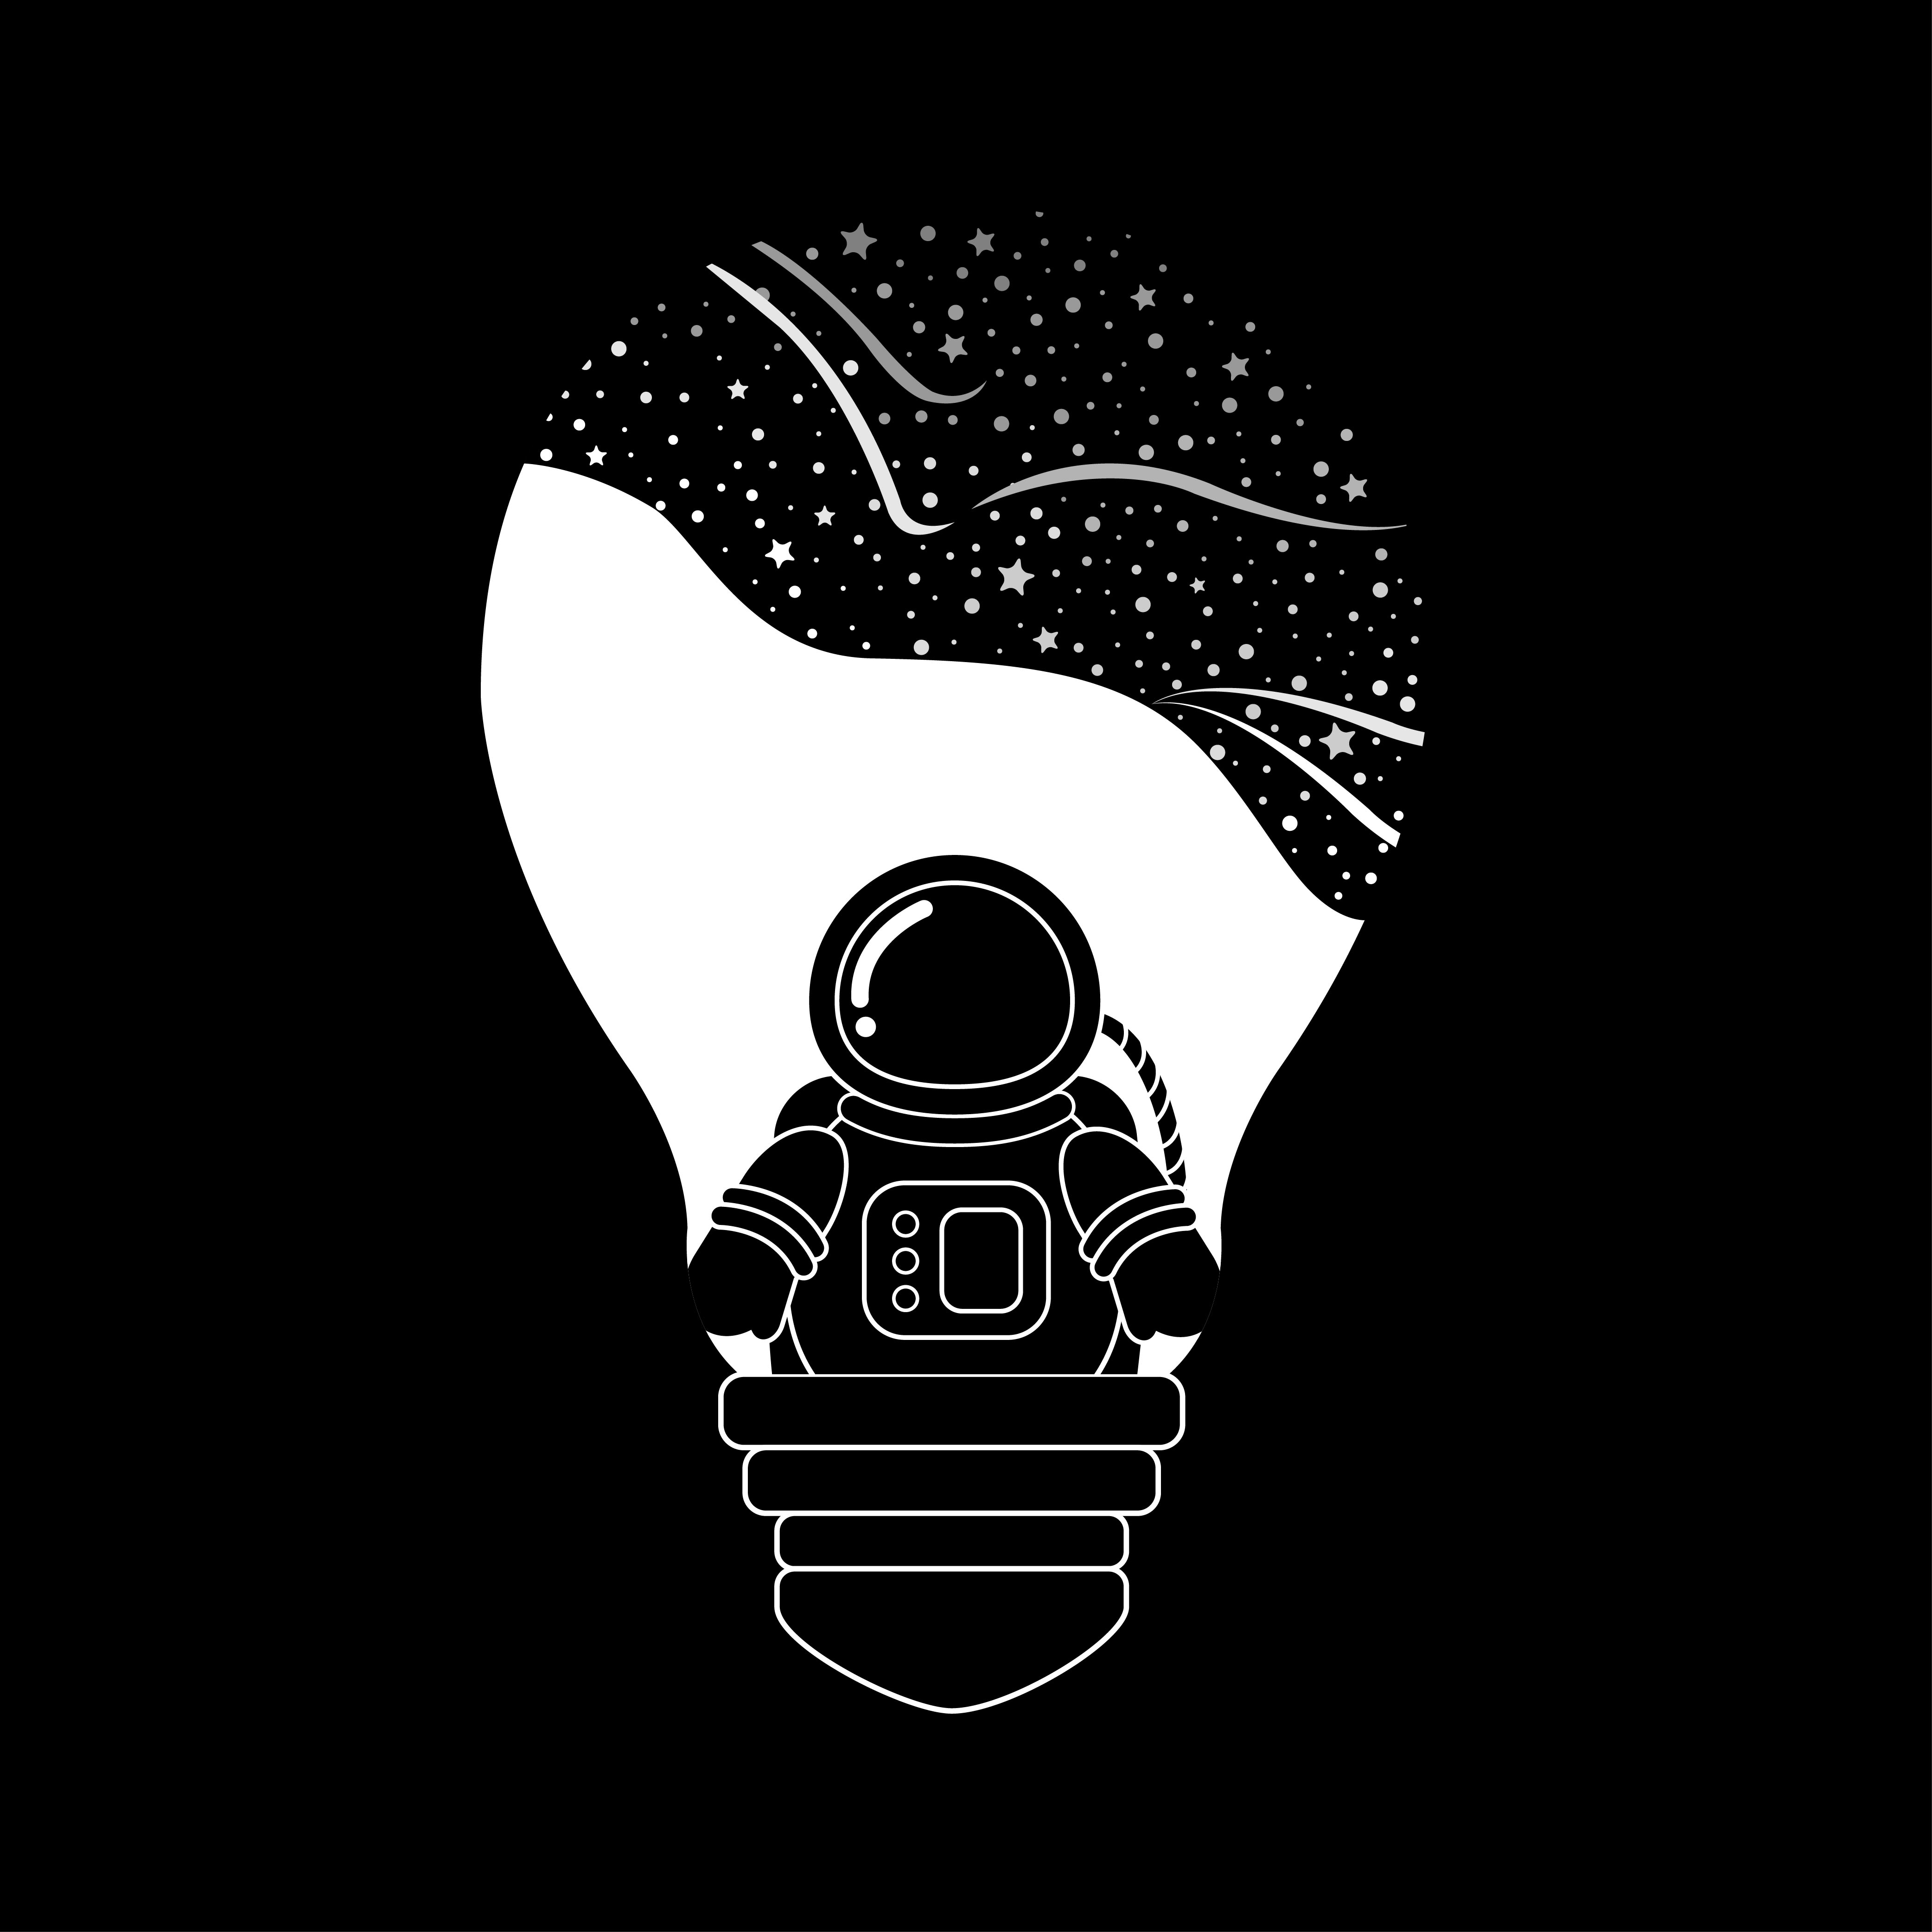 Astro | Lightbulb